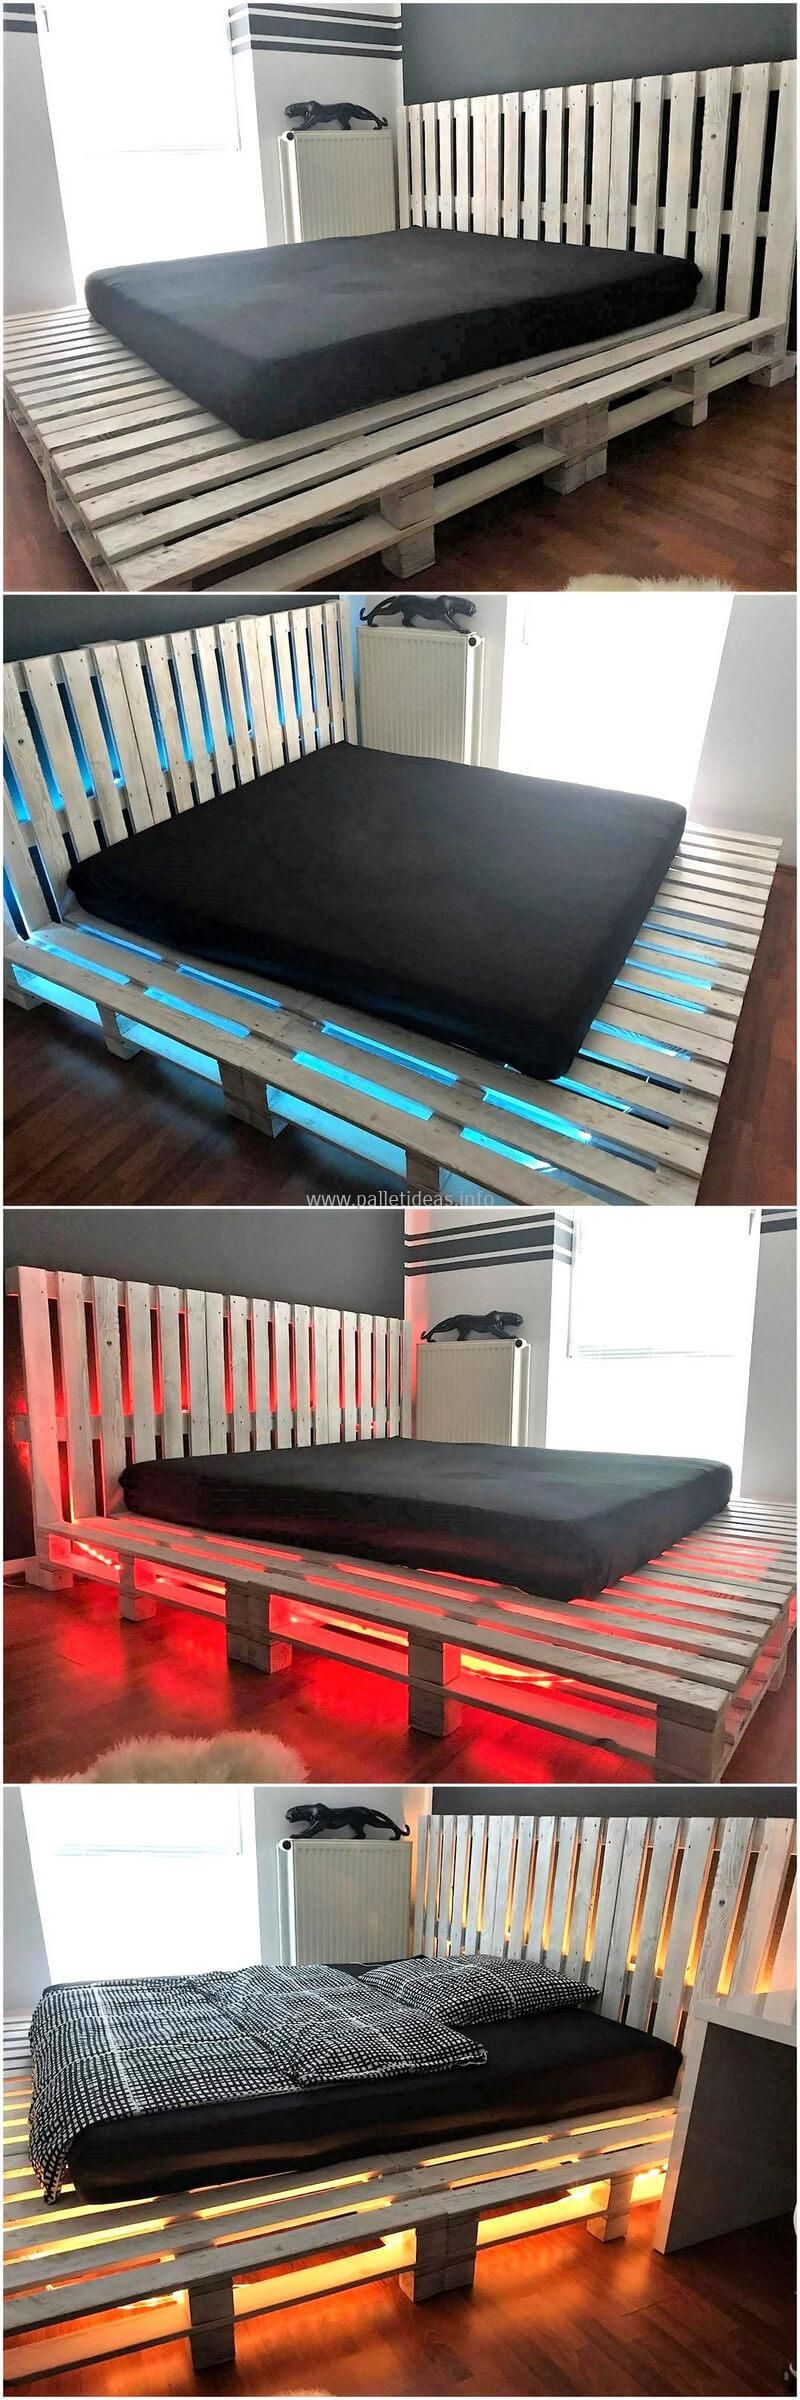 Ingenious DIY Wood Pallet Recycling Projects: The Idea We Are Showing Here  For The Reclaimed Wood Pallet Is Impressive With The Space To Place The  Items Of